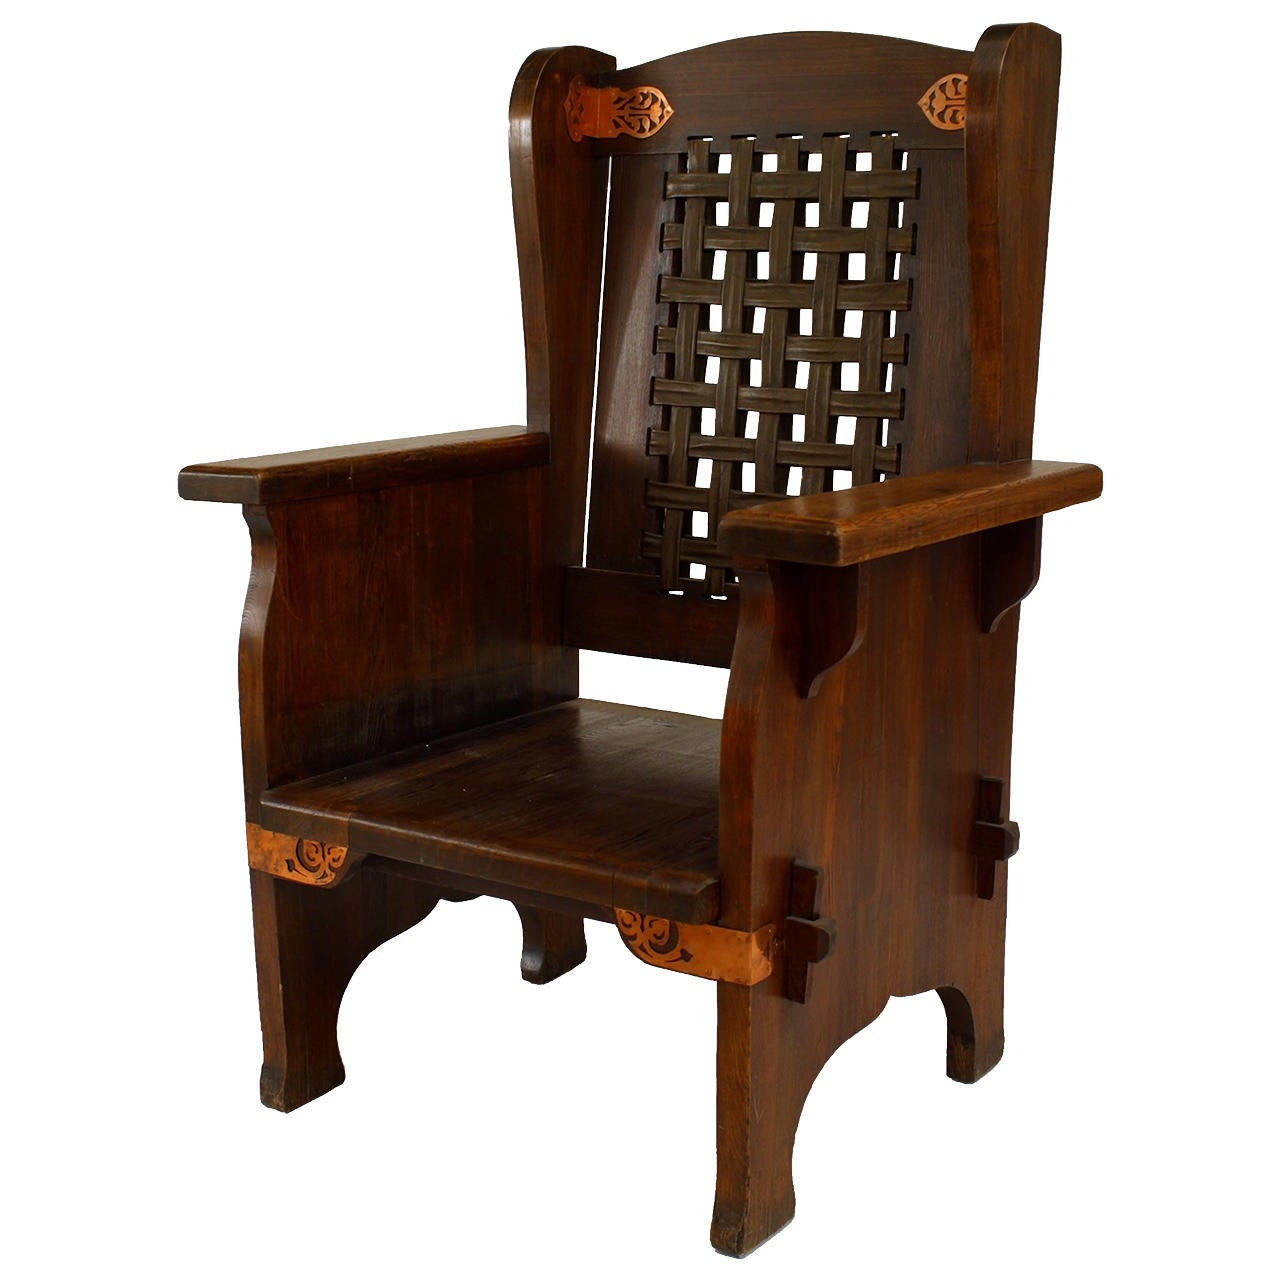 Late 19th century american mission wing chair by dexter for Century furniture